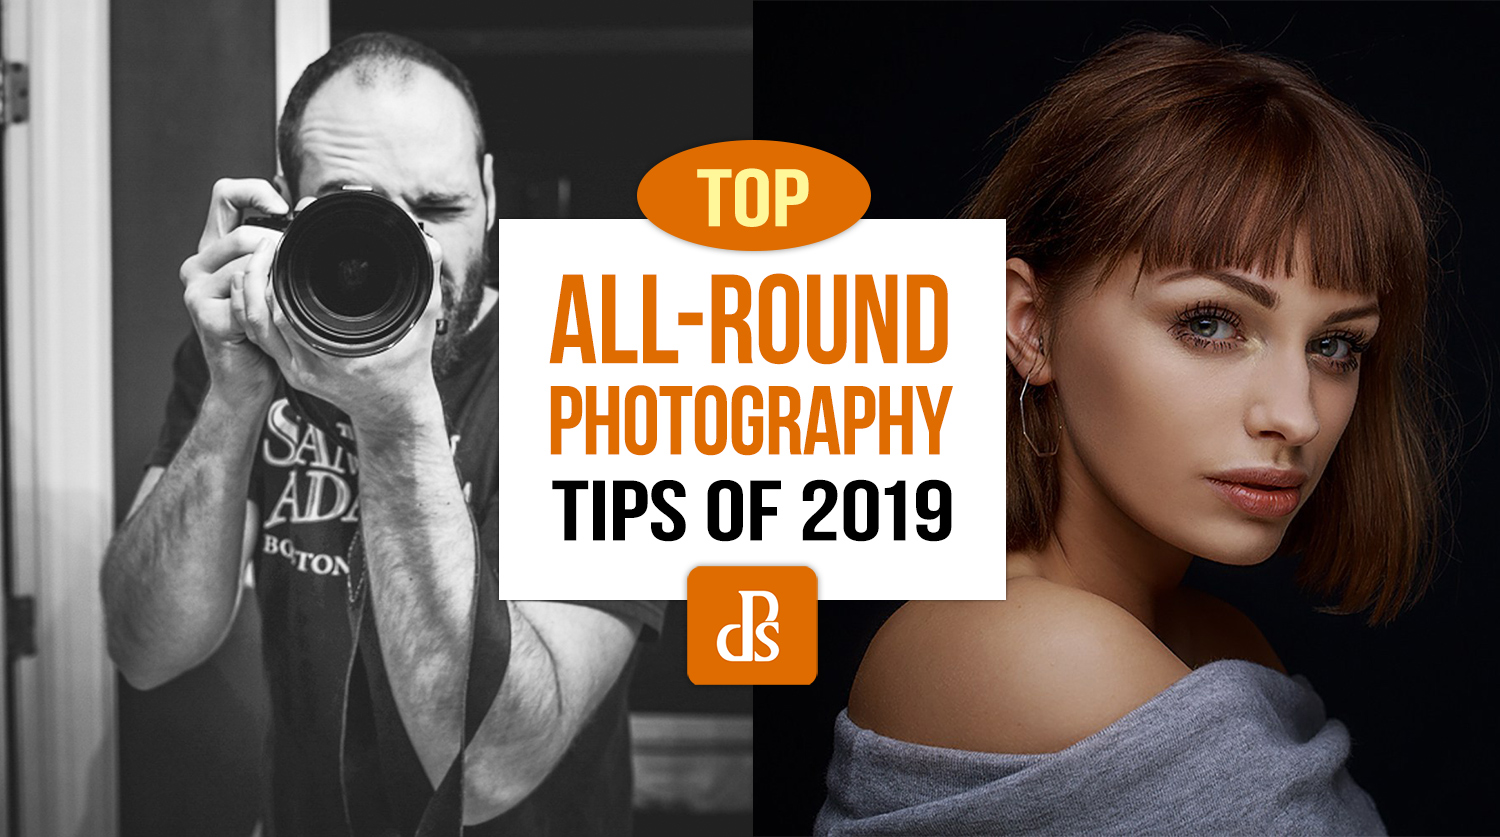 dPS Top All-round Photography Tips 2019